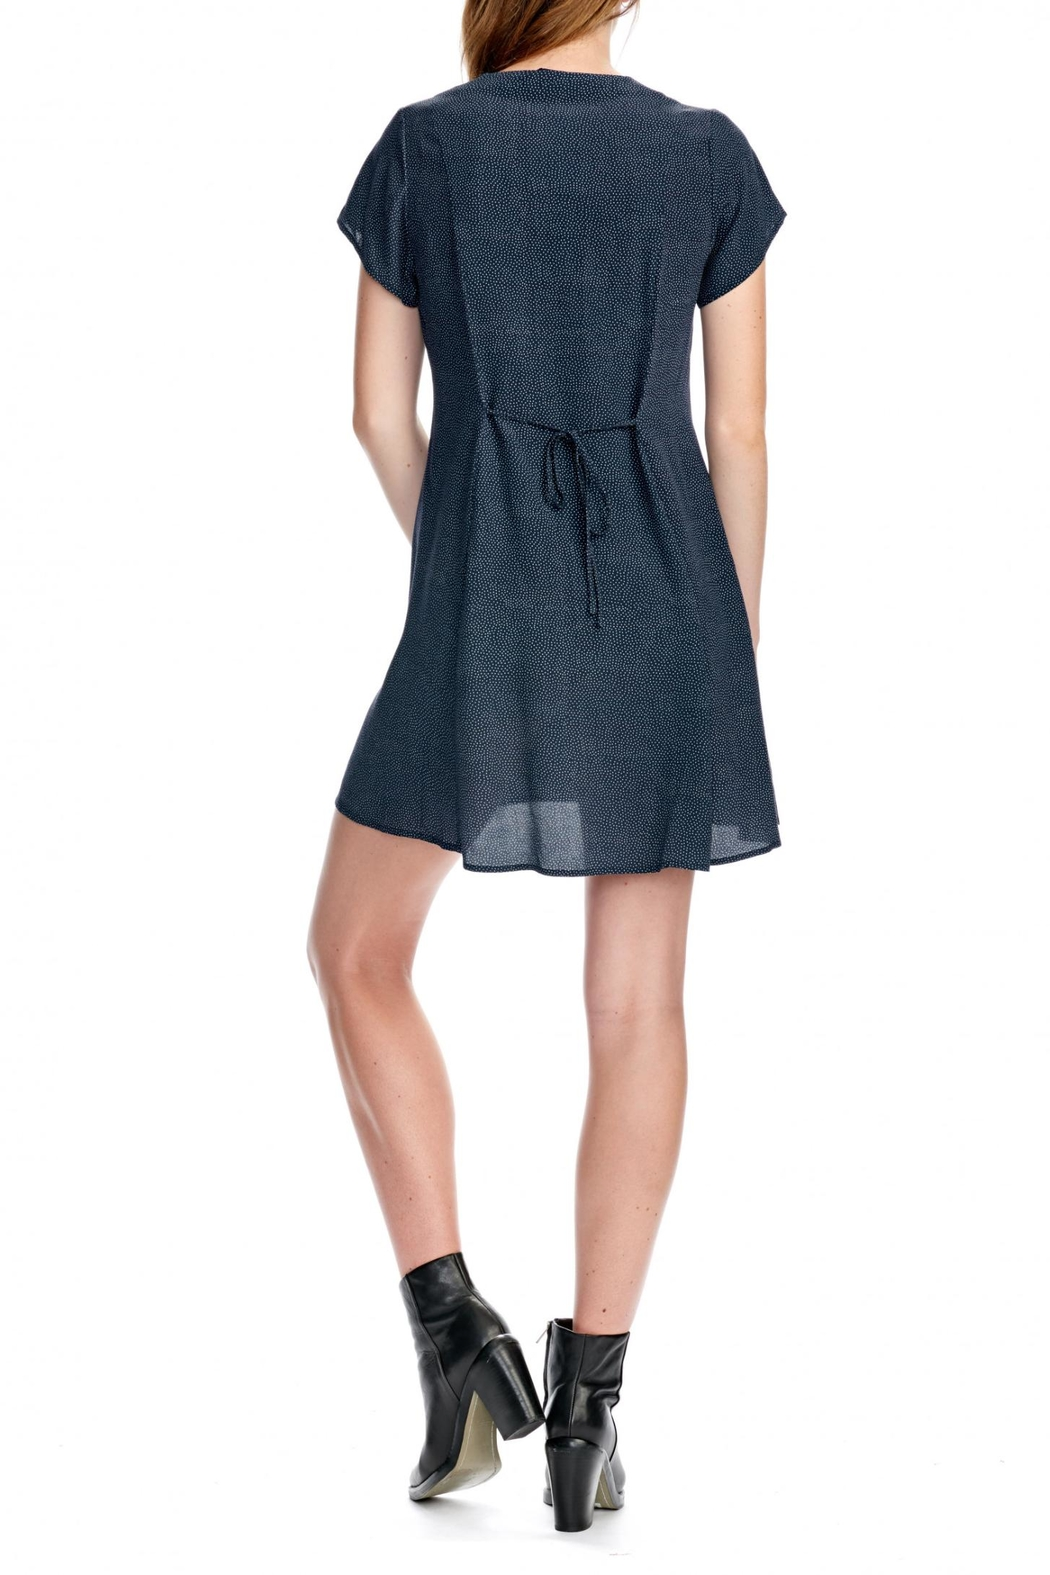 ROLLAS Milla Navy Dress - Side Cropped Image